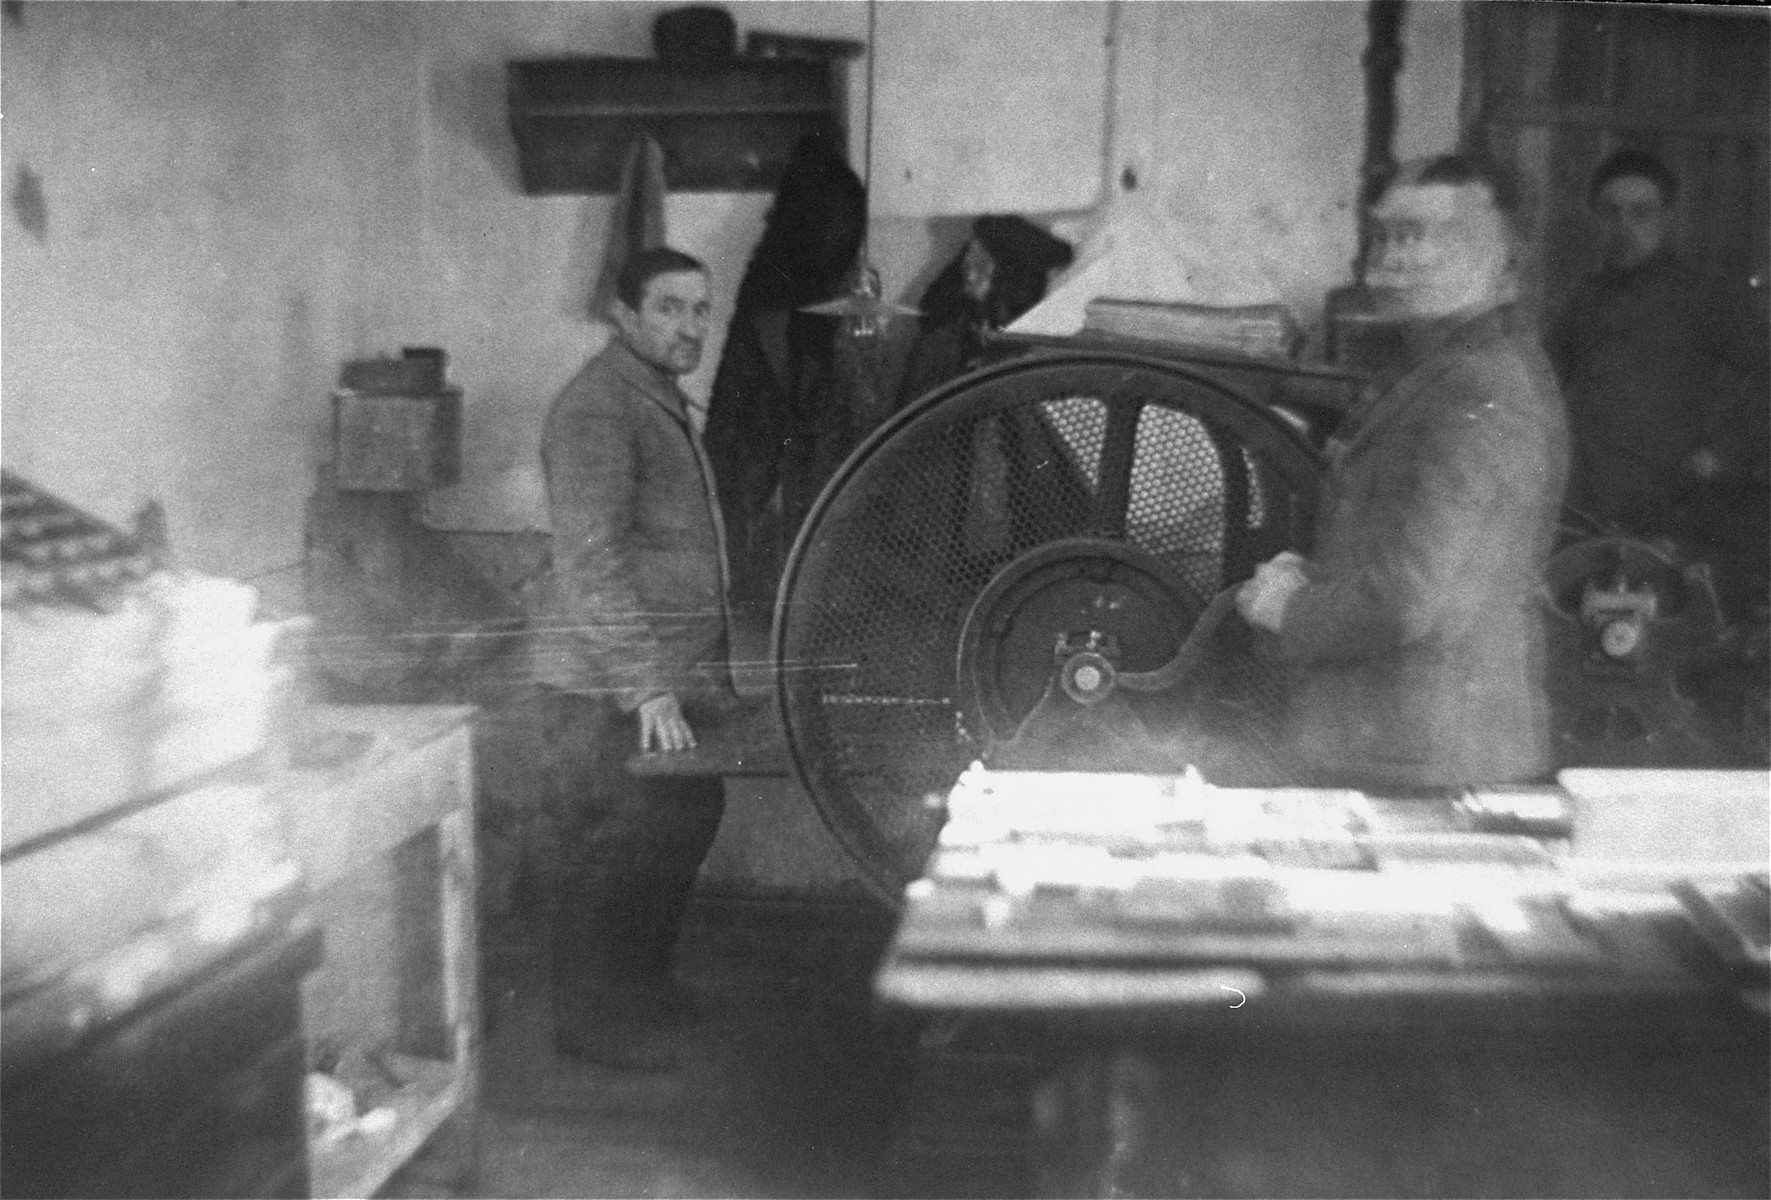 Jewish men working at a printing press in the Glubokoye ghetto.